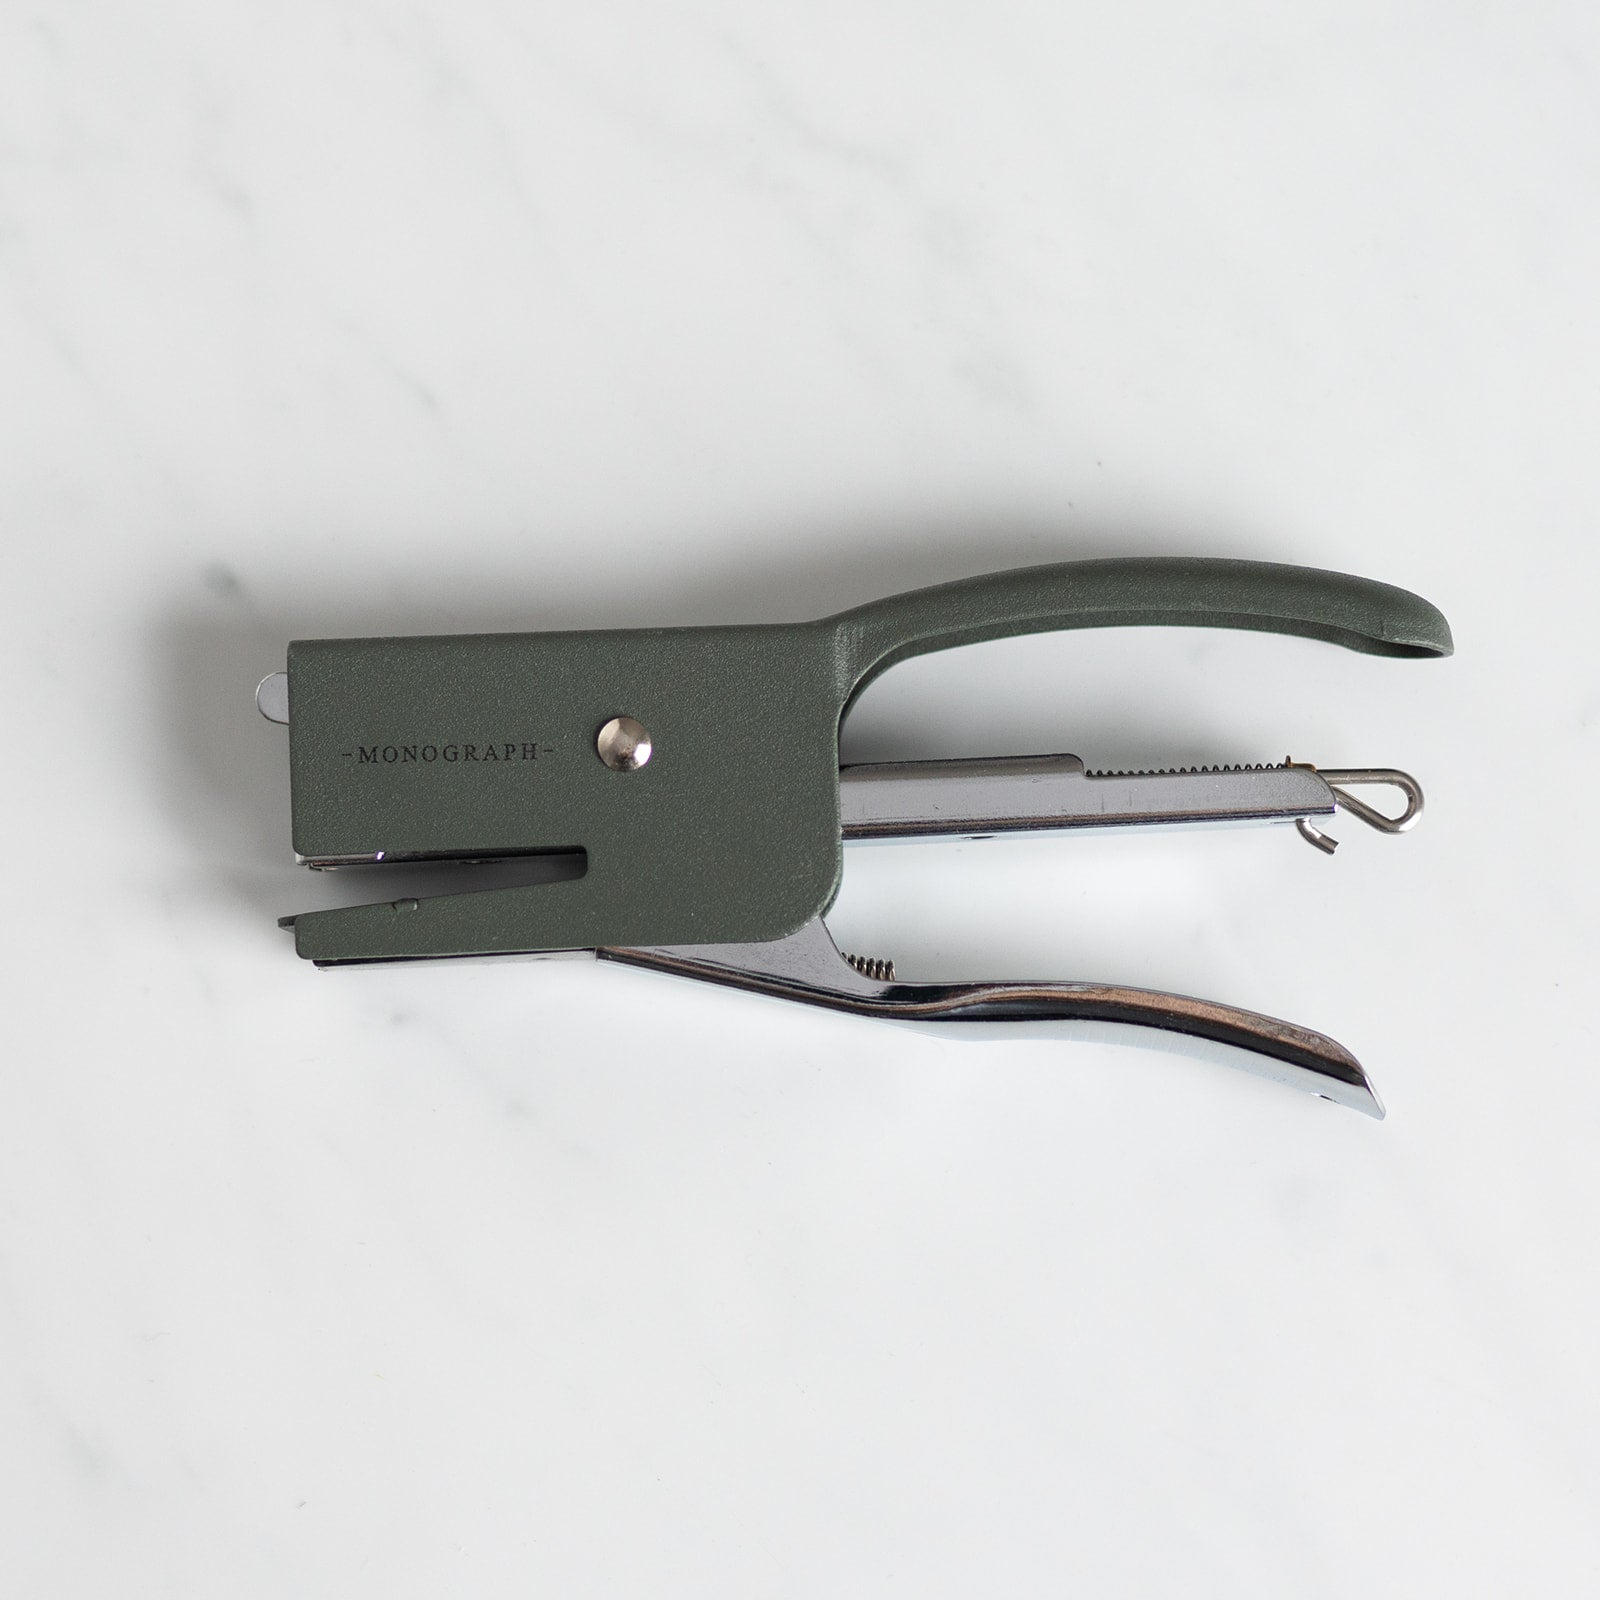 Green Handheld Stapler